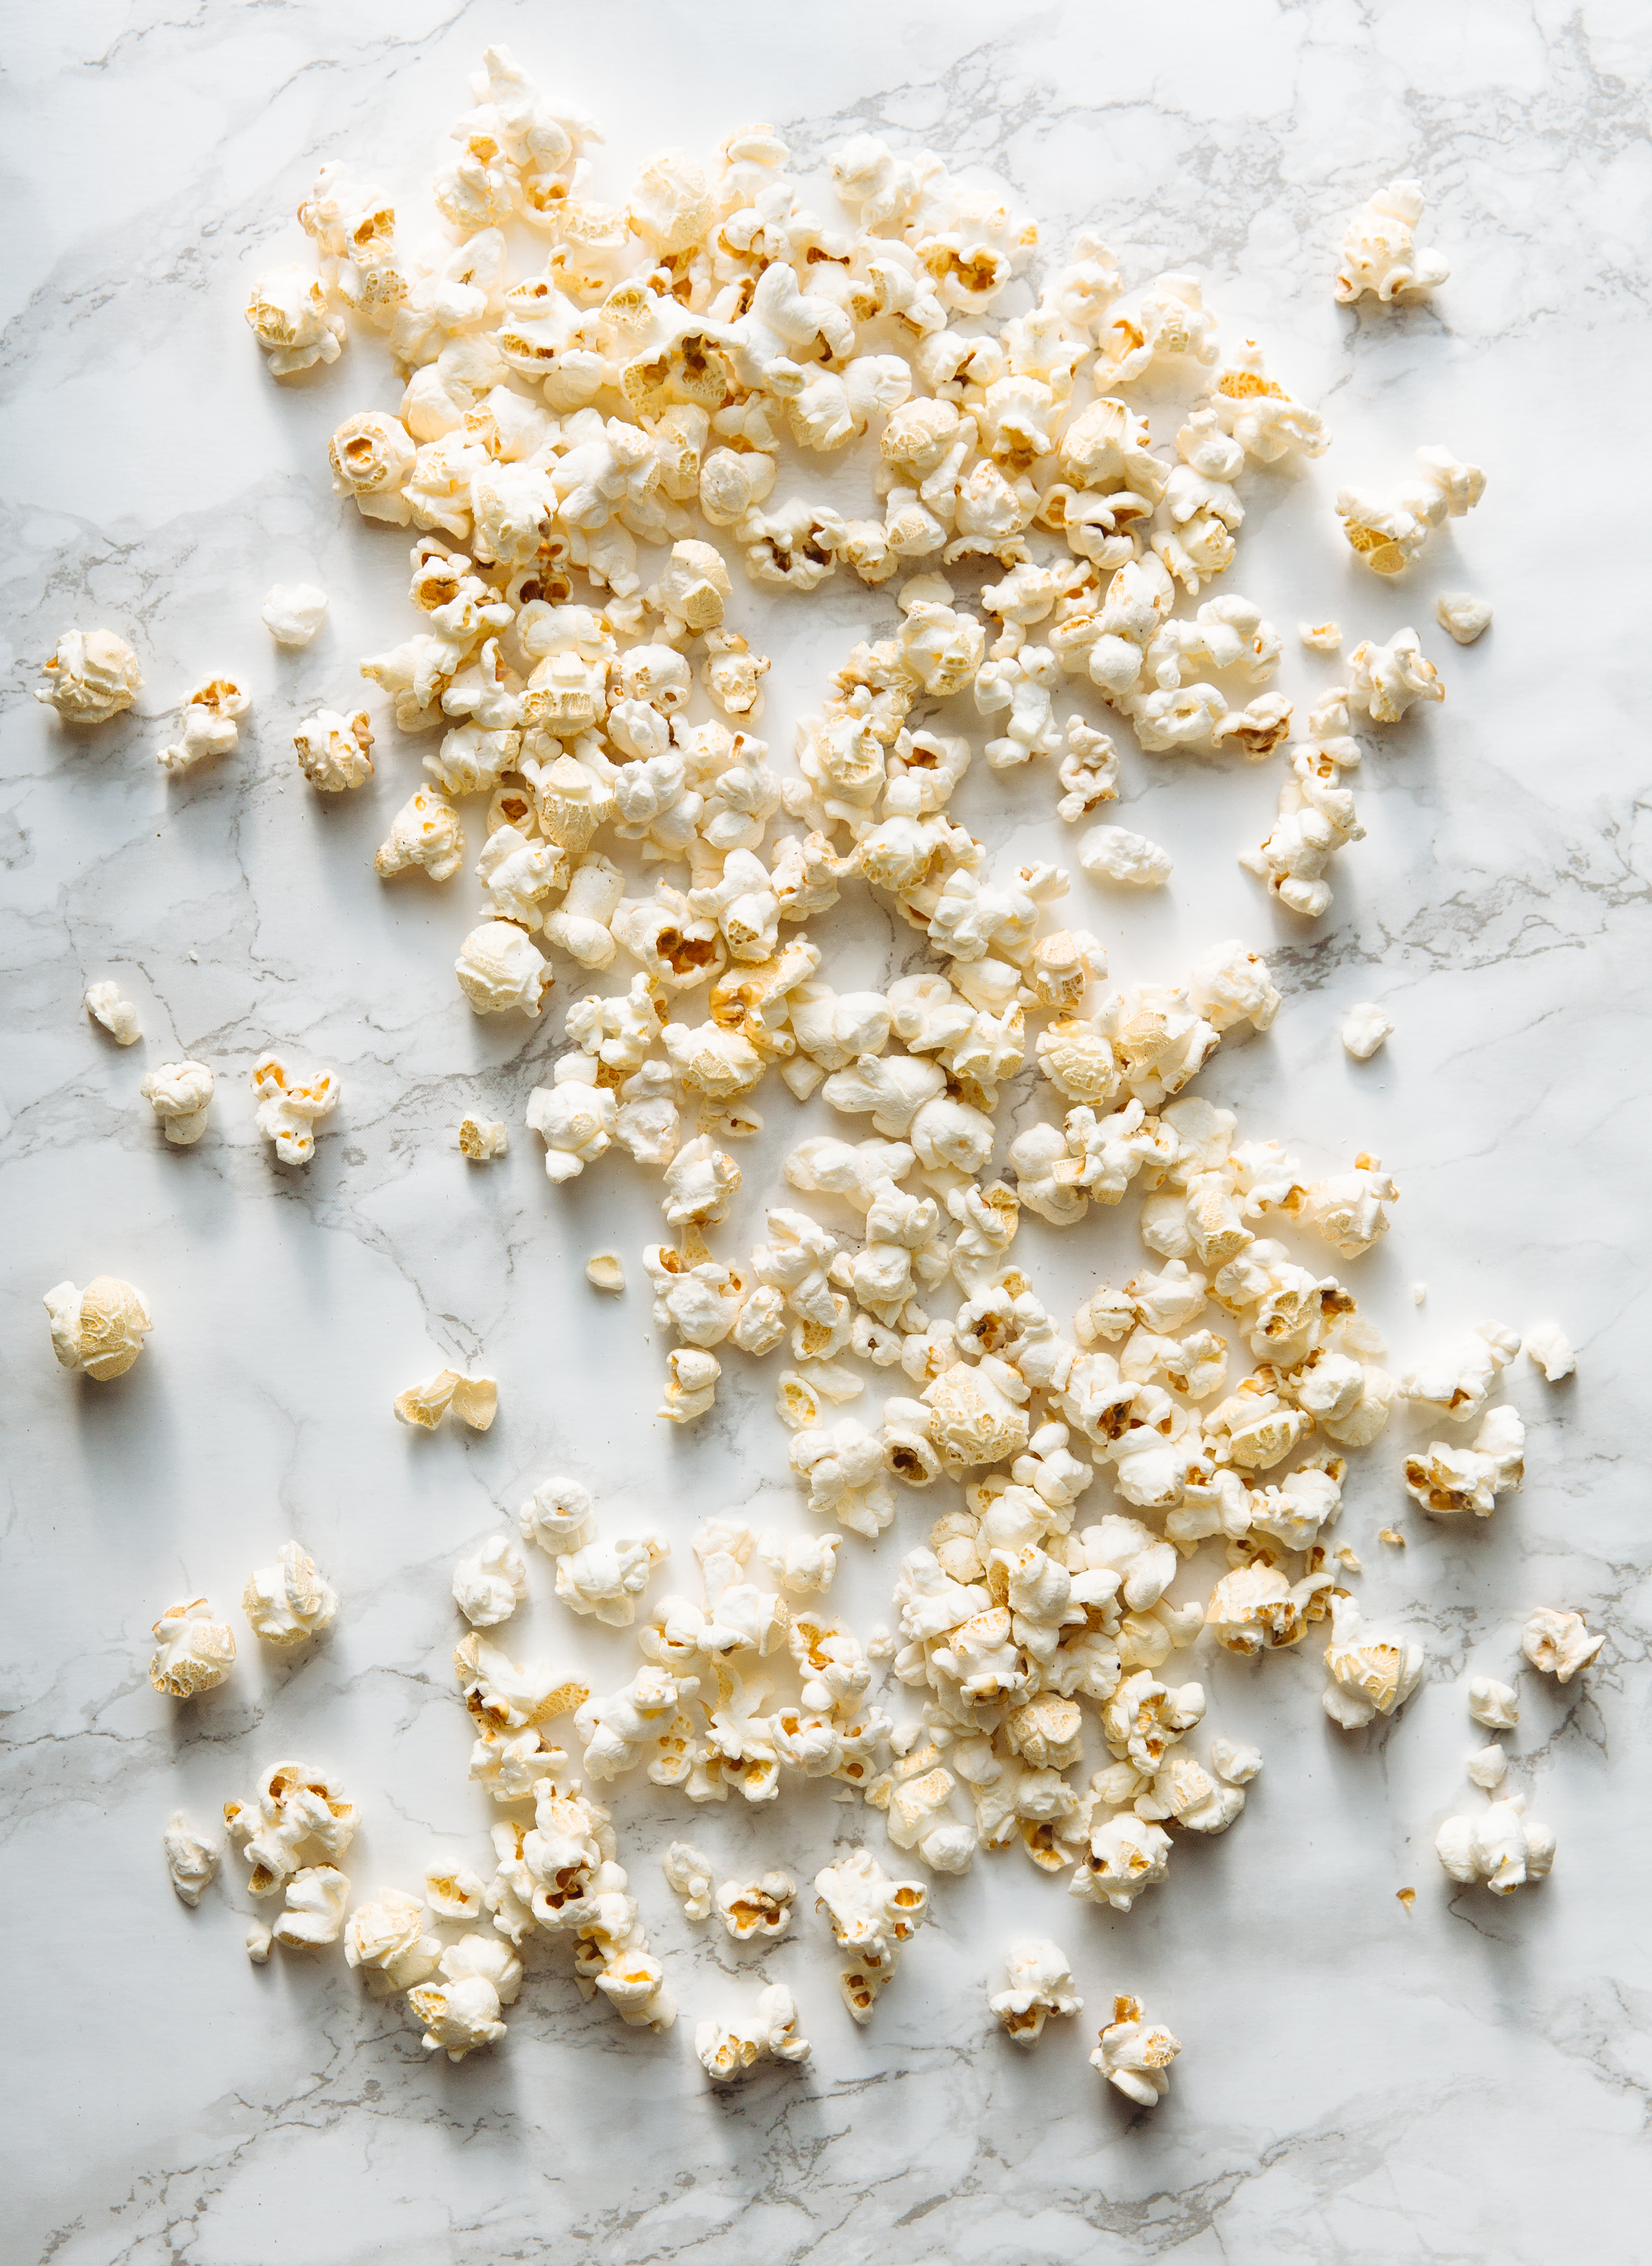 Chilli-lemon-parmesan-popcorn